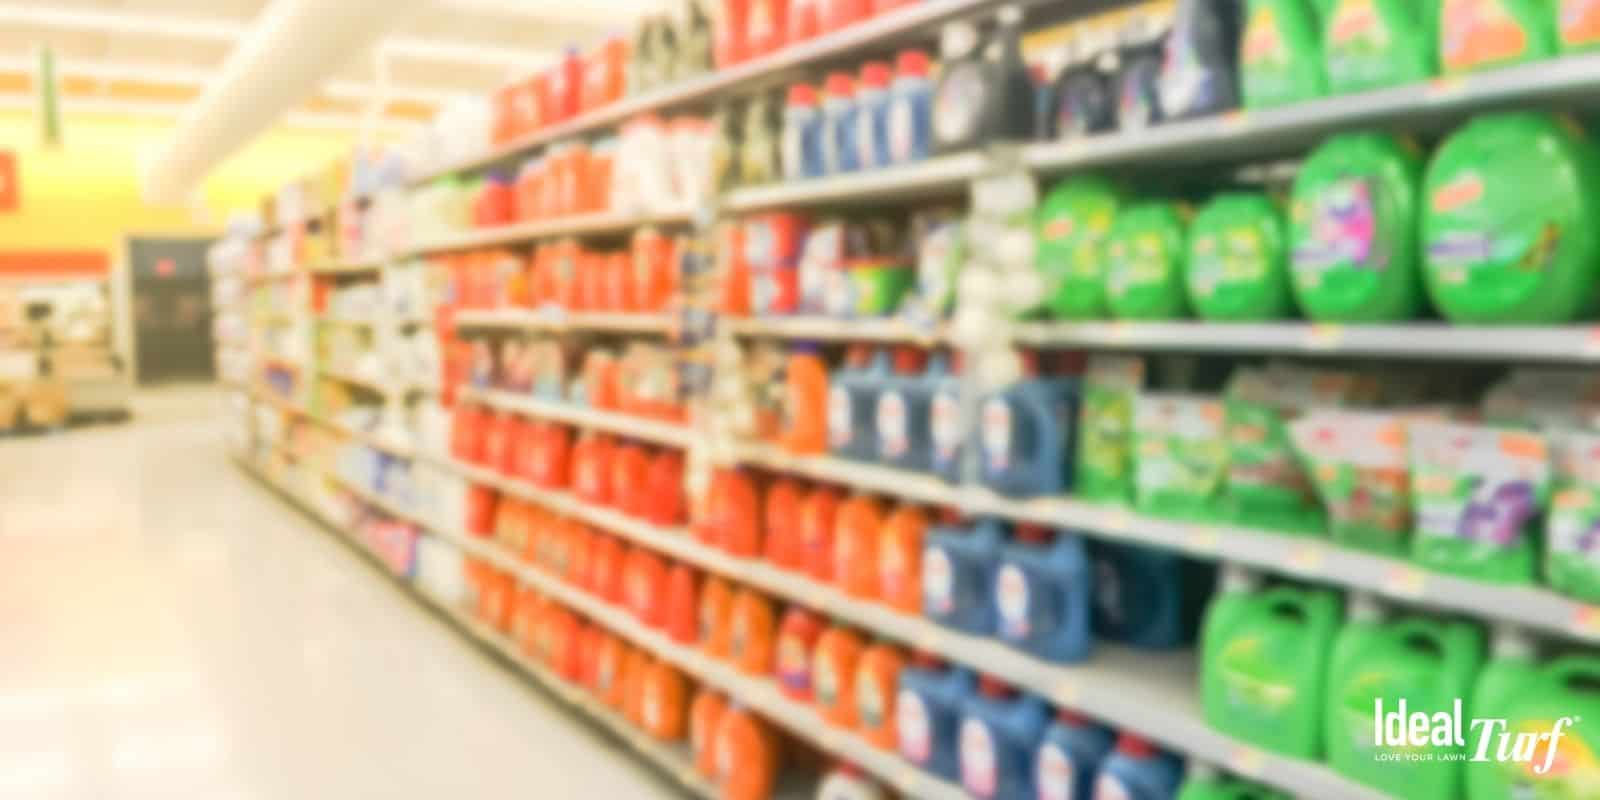 Use Organic Cleaning Products